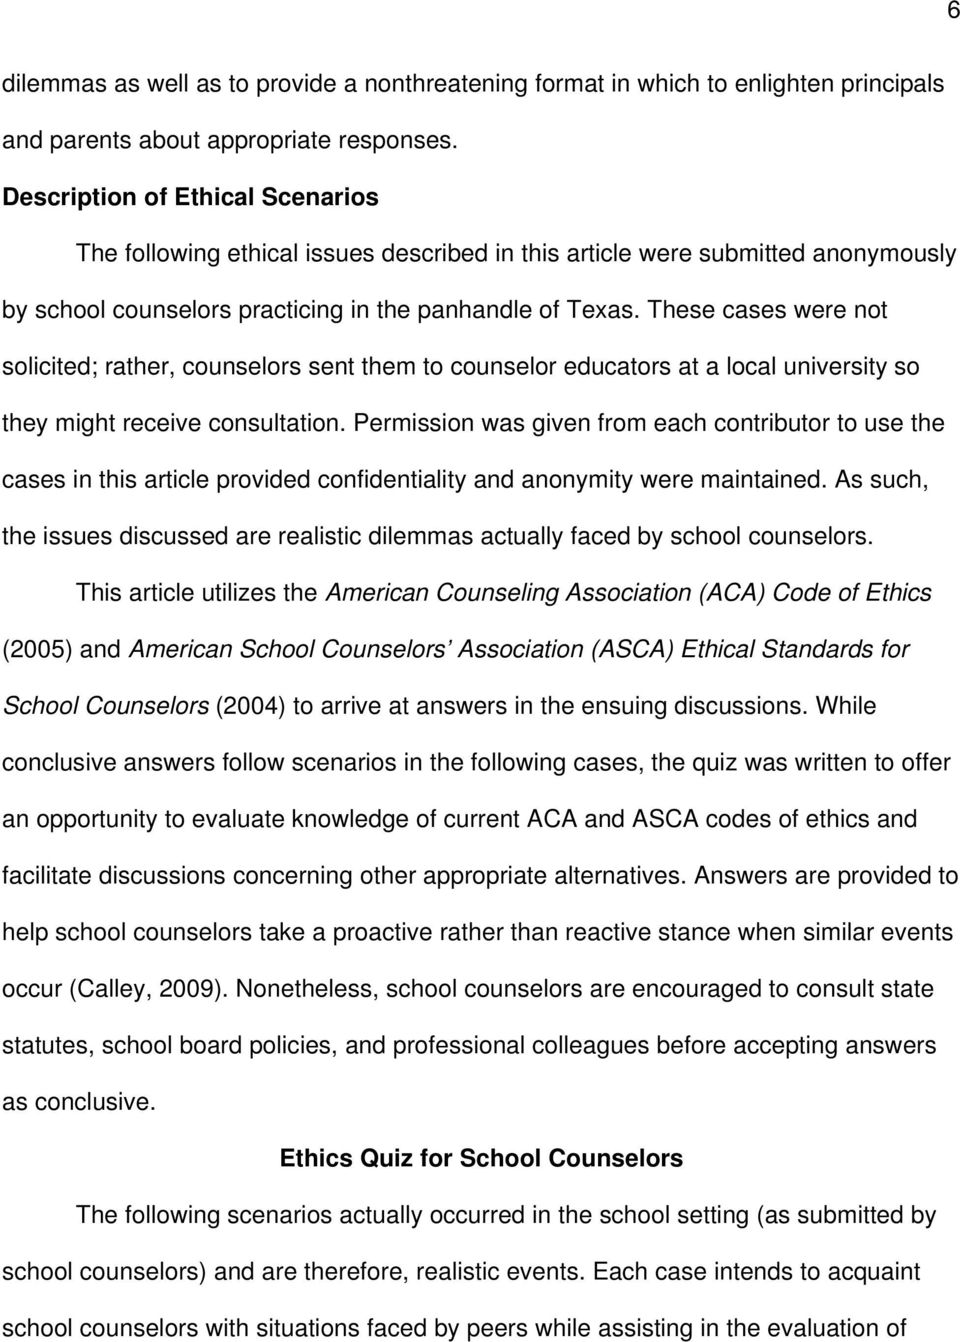 ethical dilemmas for school counselors